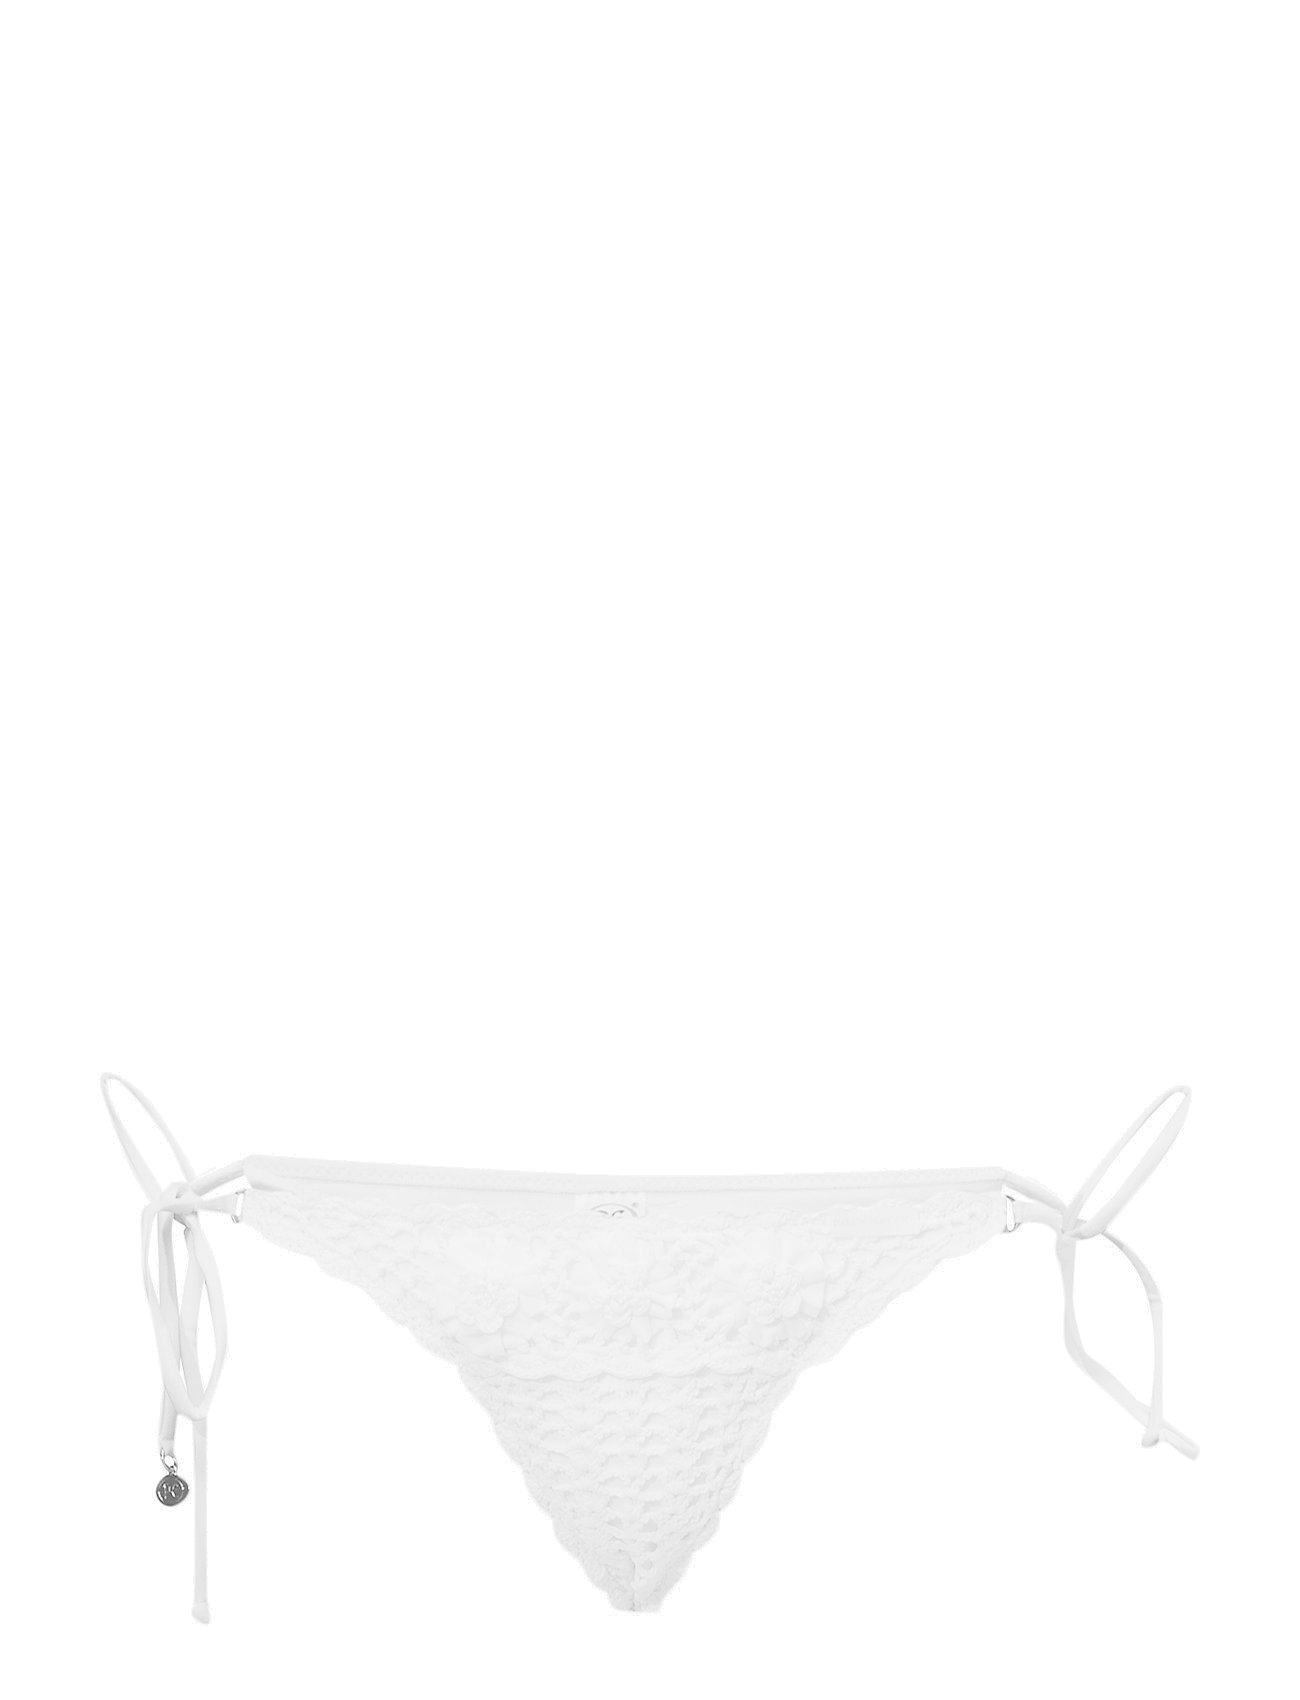 Panos Emporio KANDIA BOTTOM - WHITE